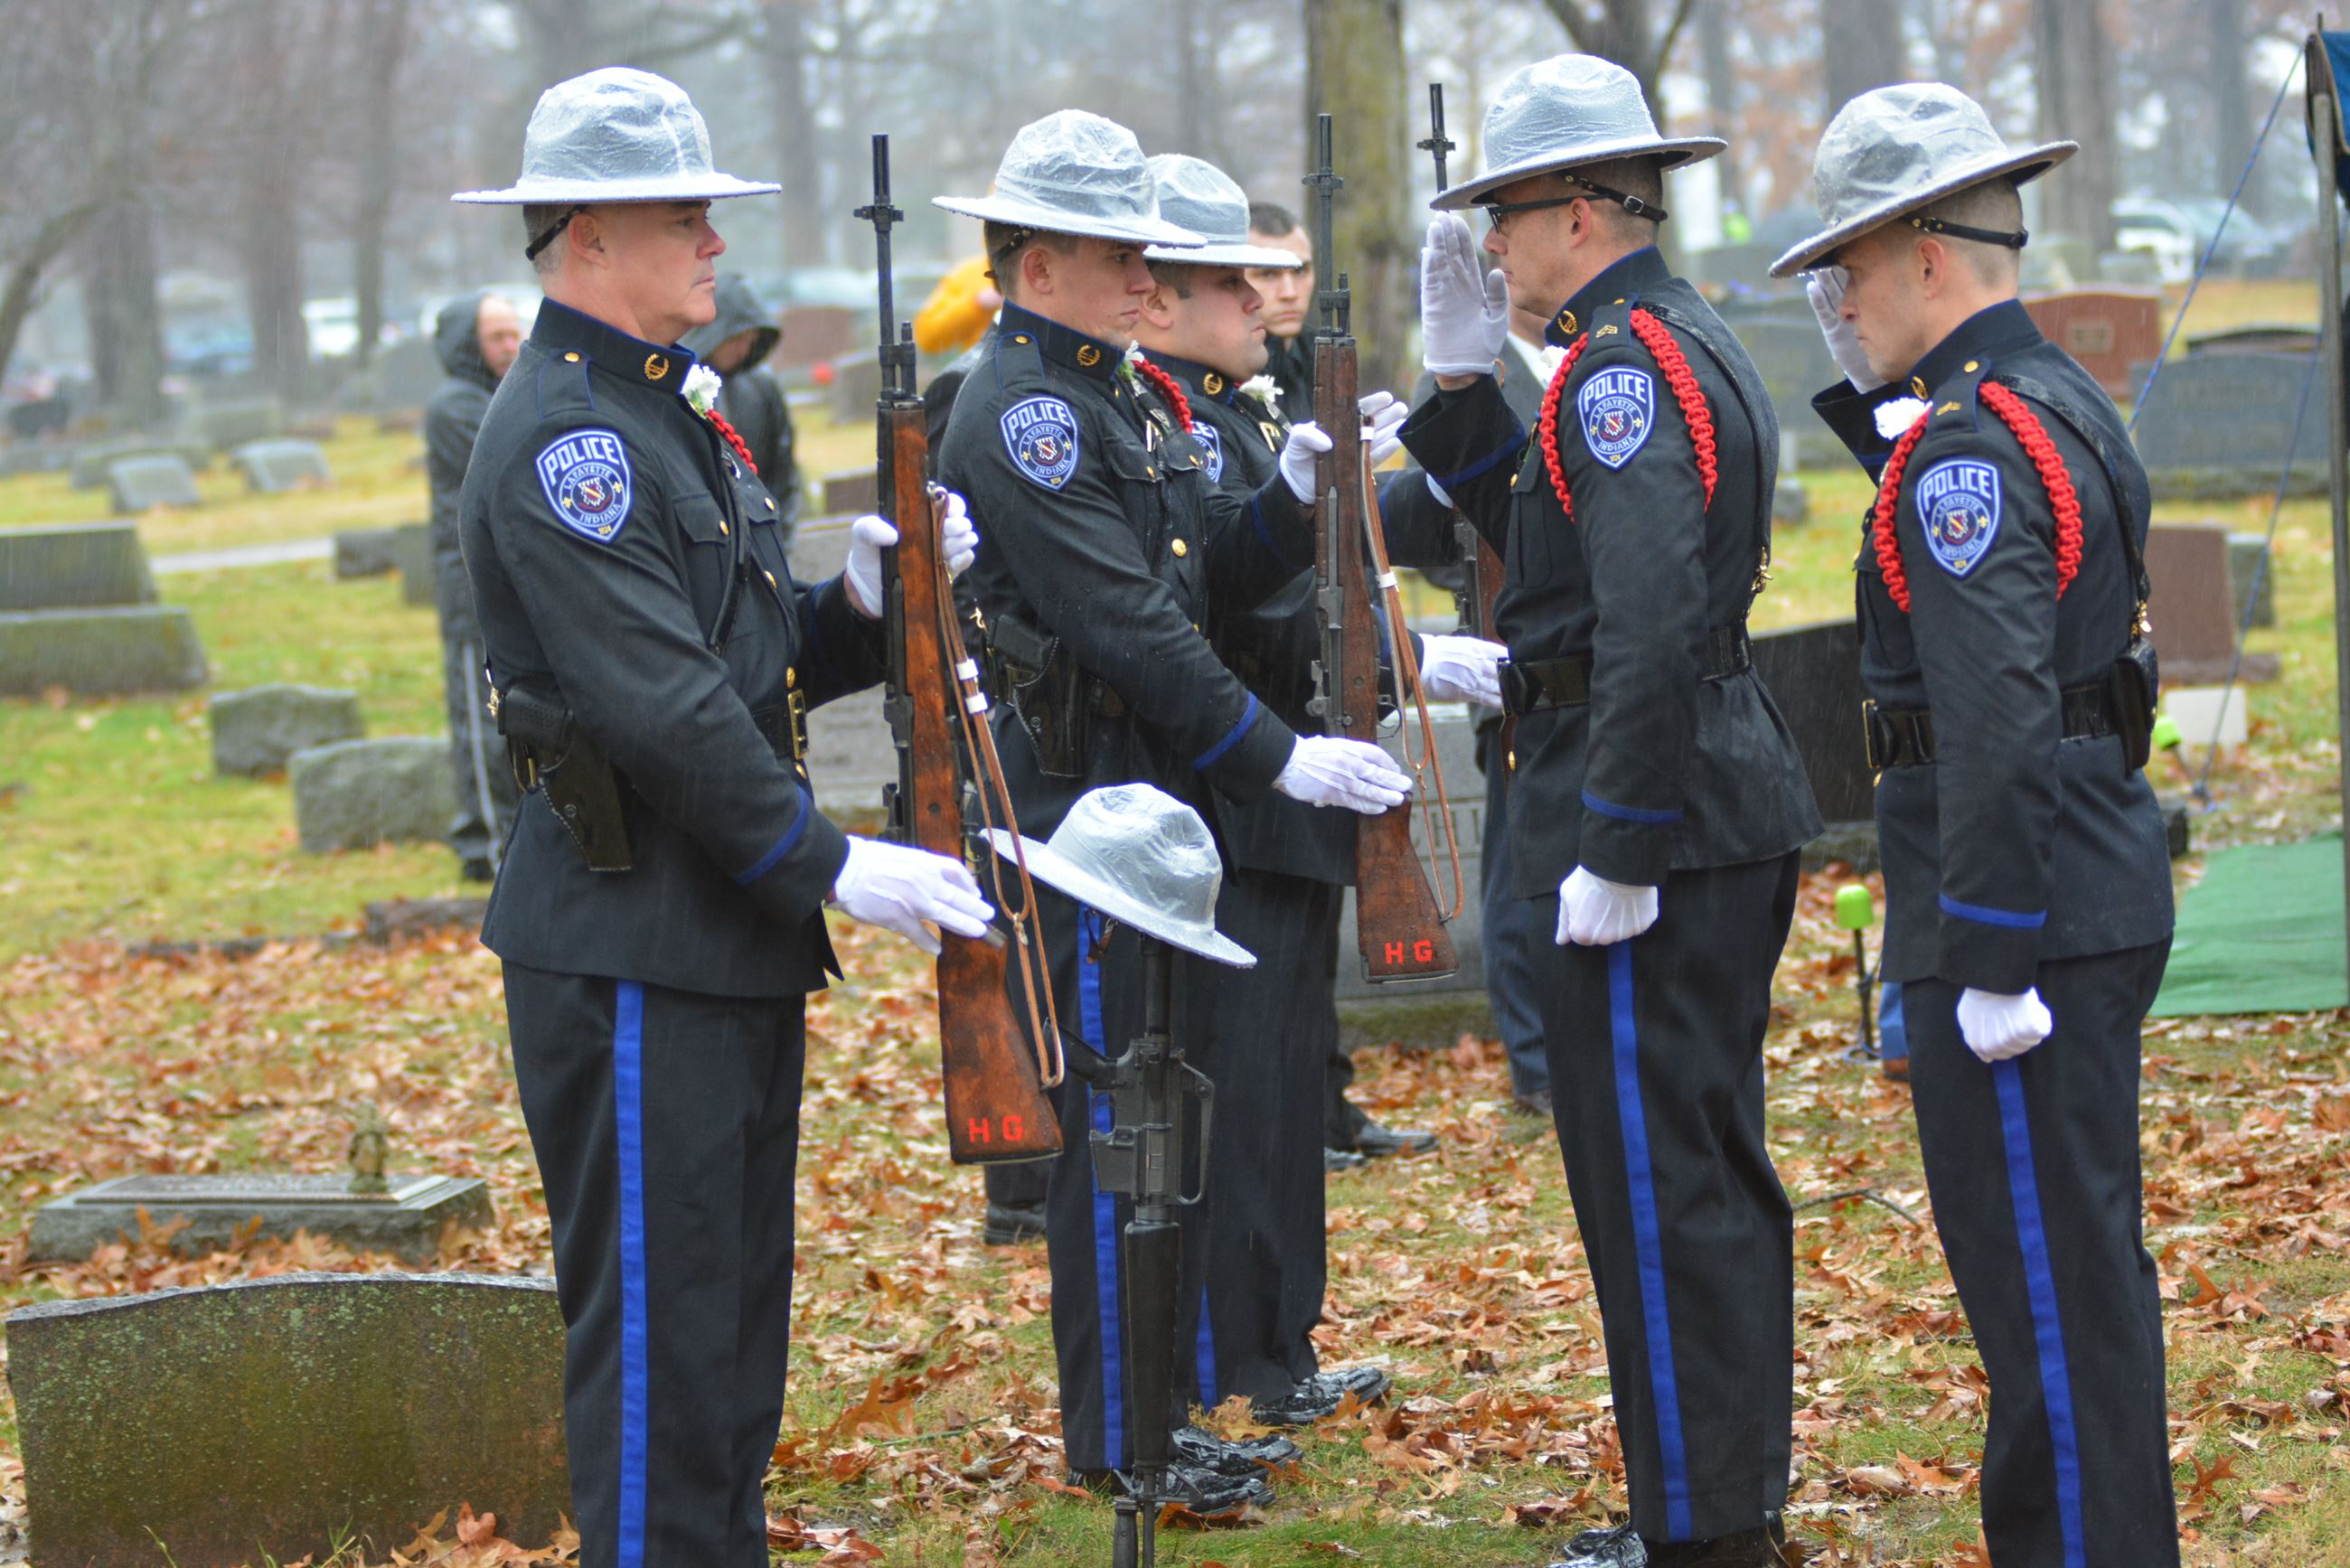 Officer William Meluch Funeral